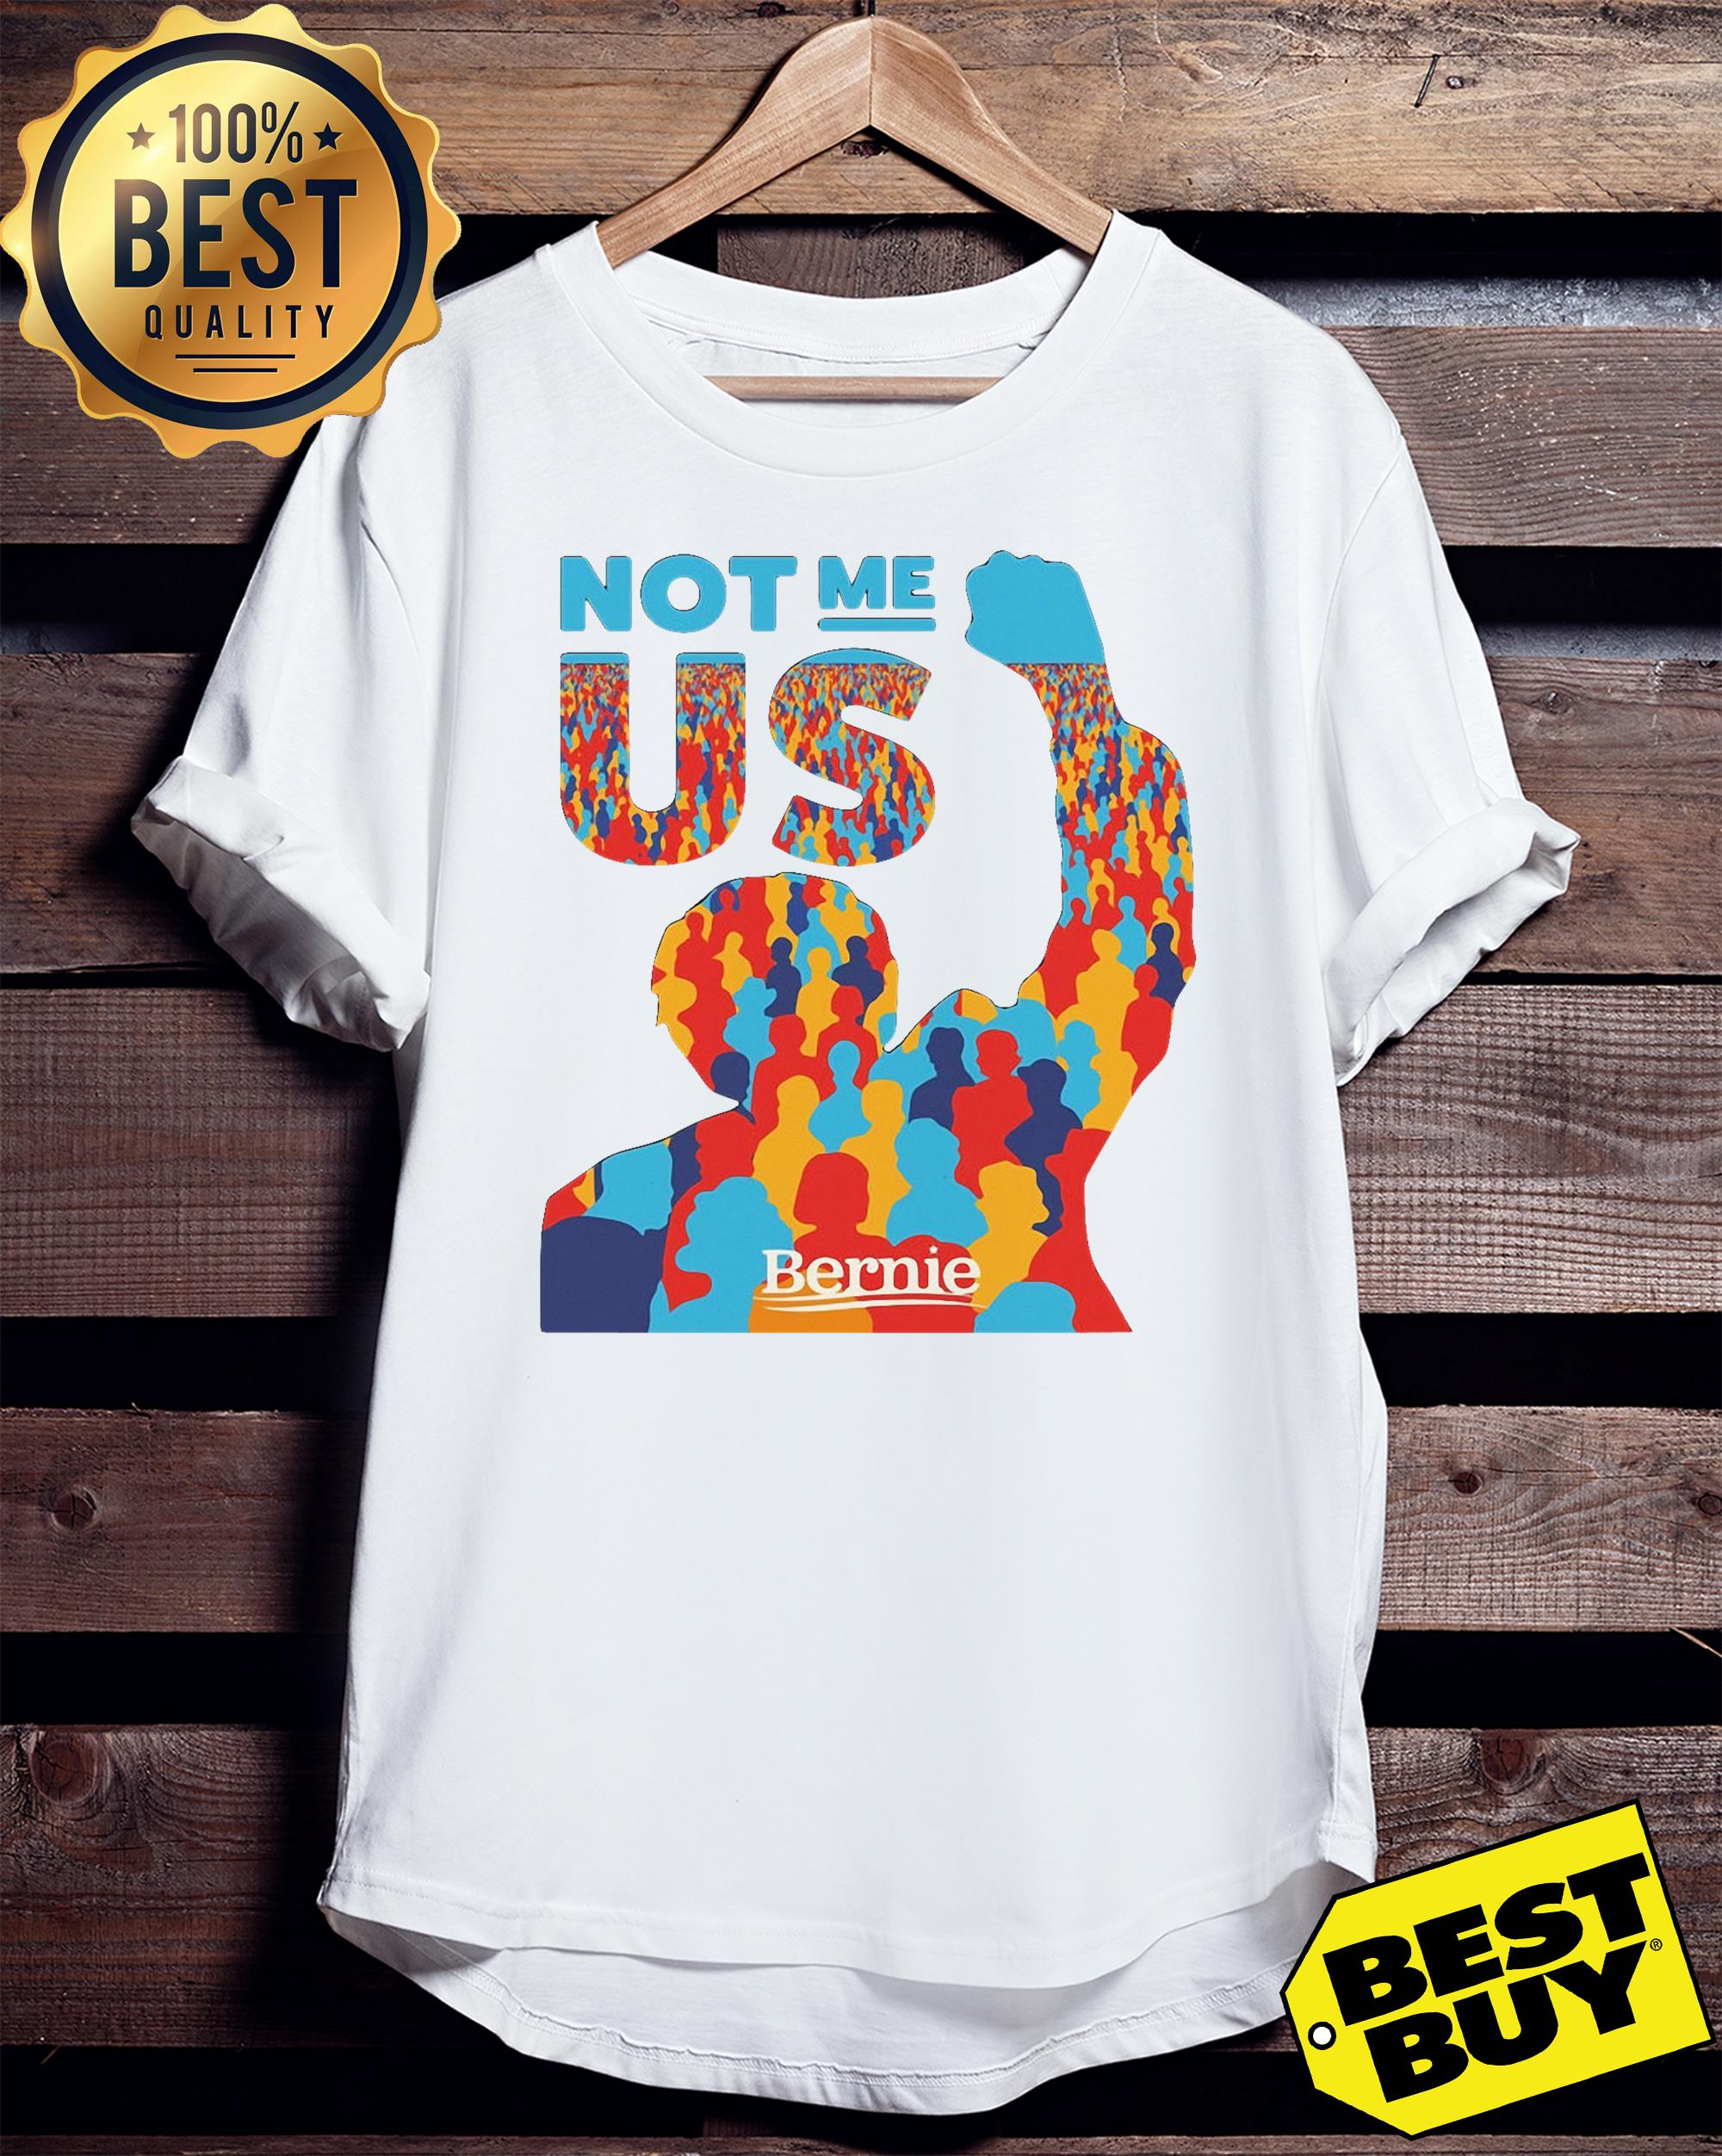 Not me us Bernie Sanders ladies tee